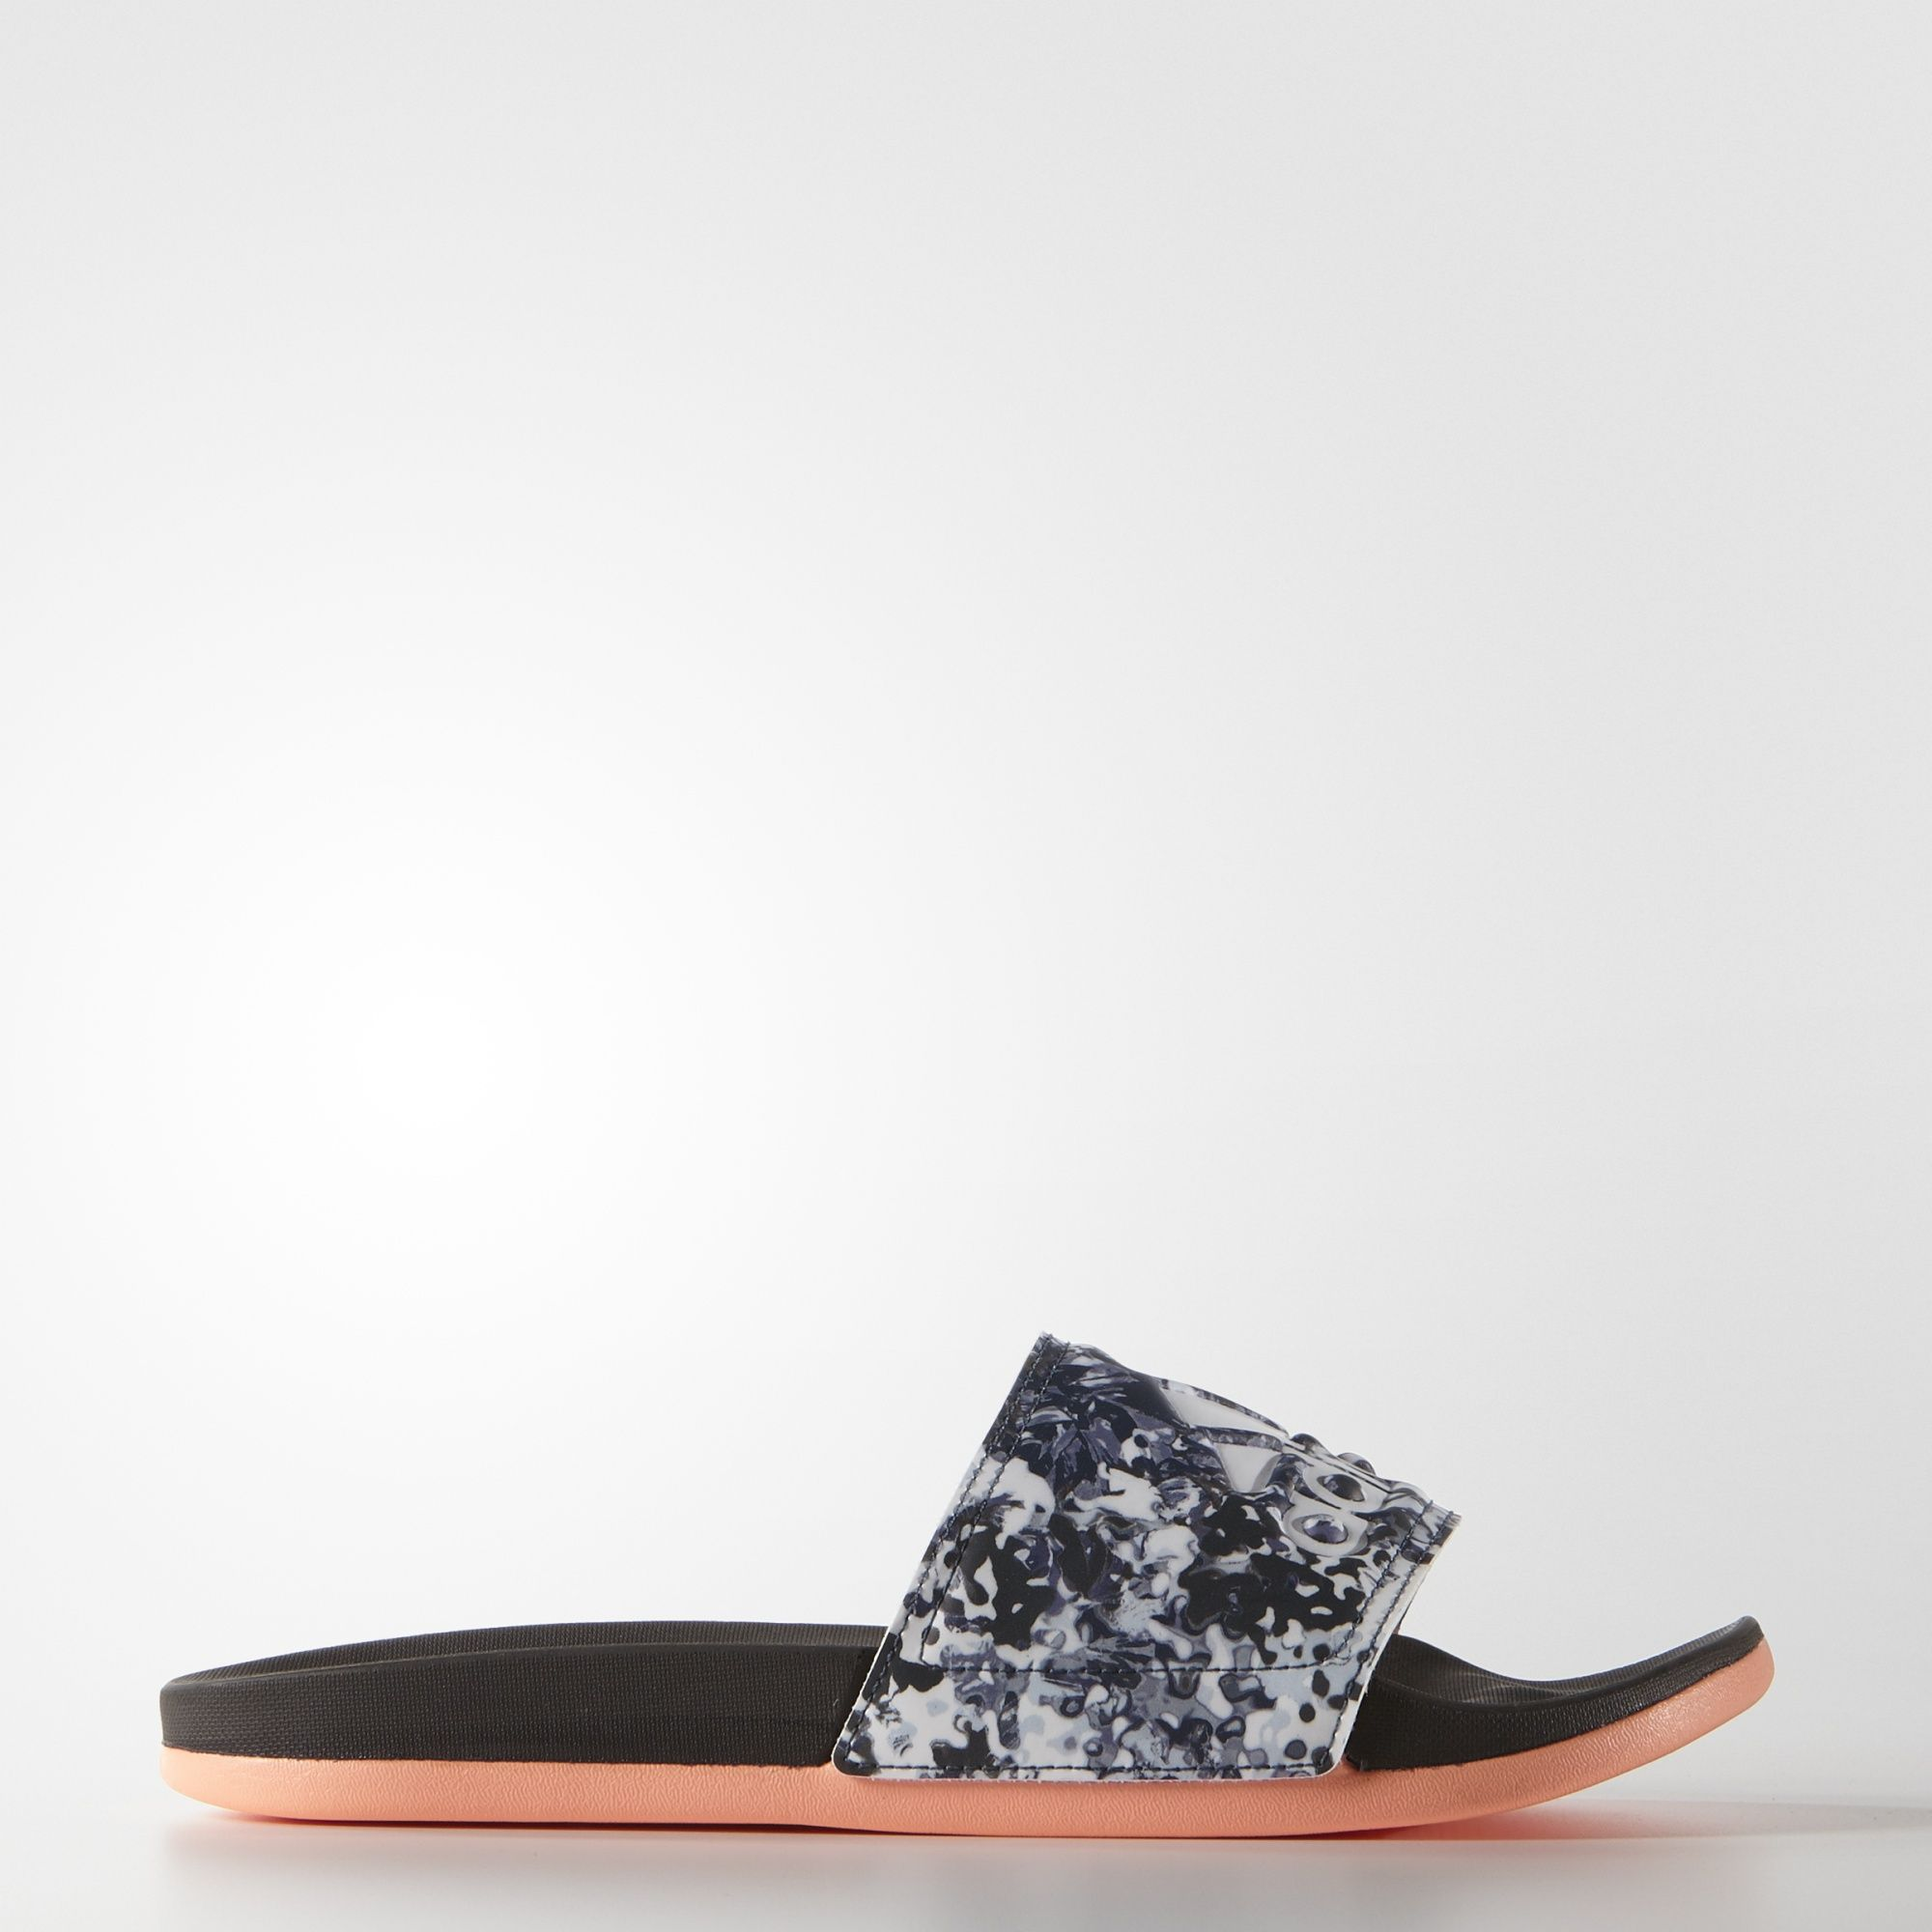 fb1597fe8ce10b Slip into post-swim relaxation mode with these women s slides. An ...